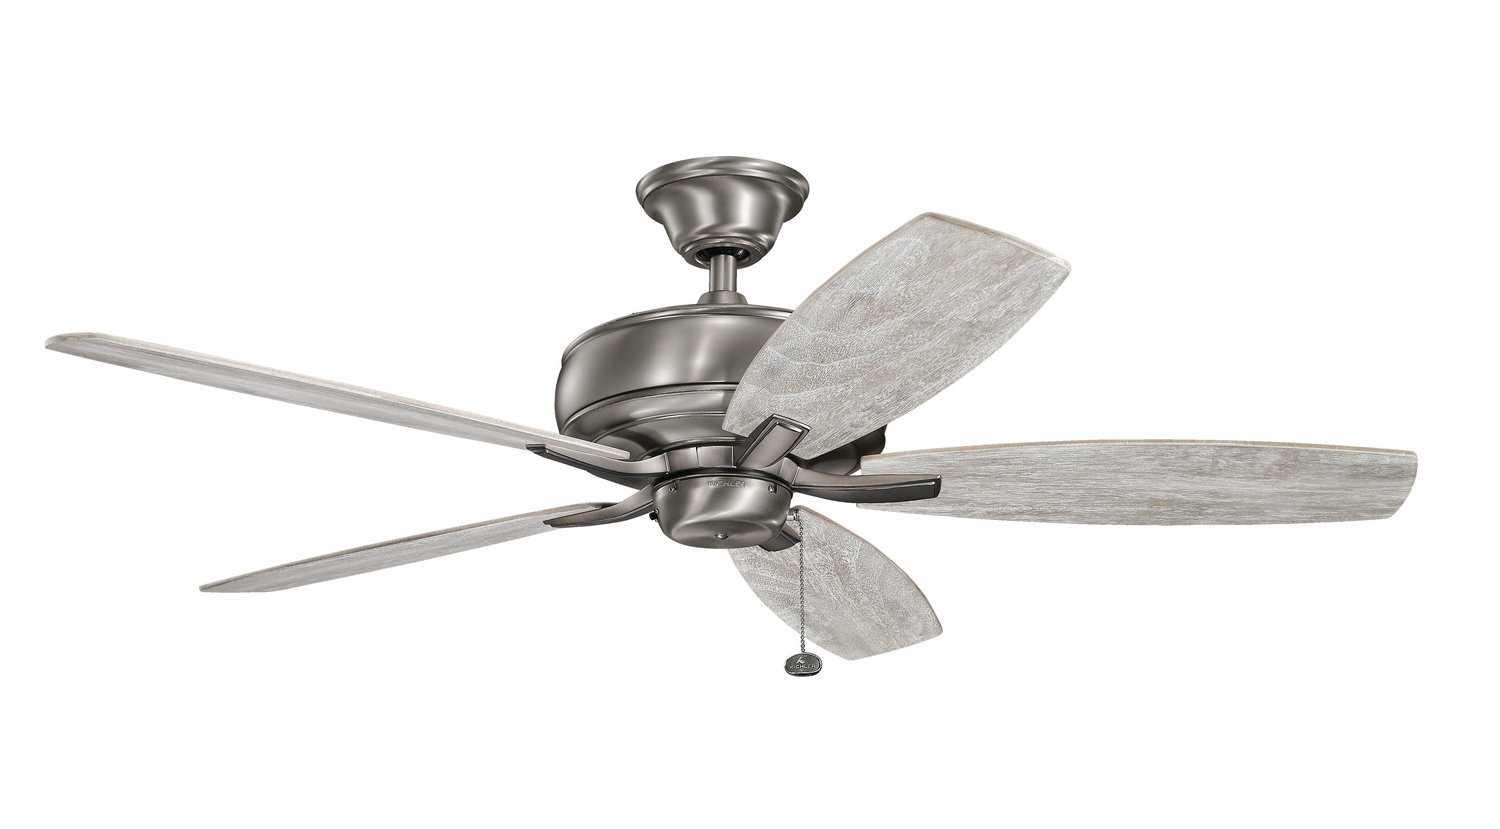 52 inchCeiling Fan from the Terra collection by Kichler 330247BAP